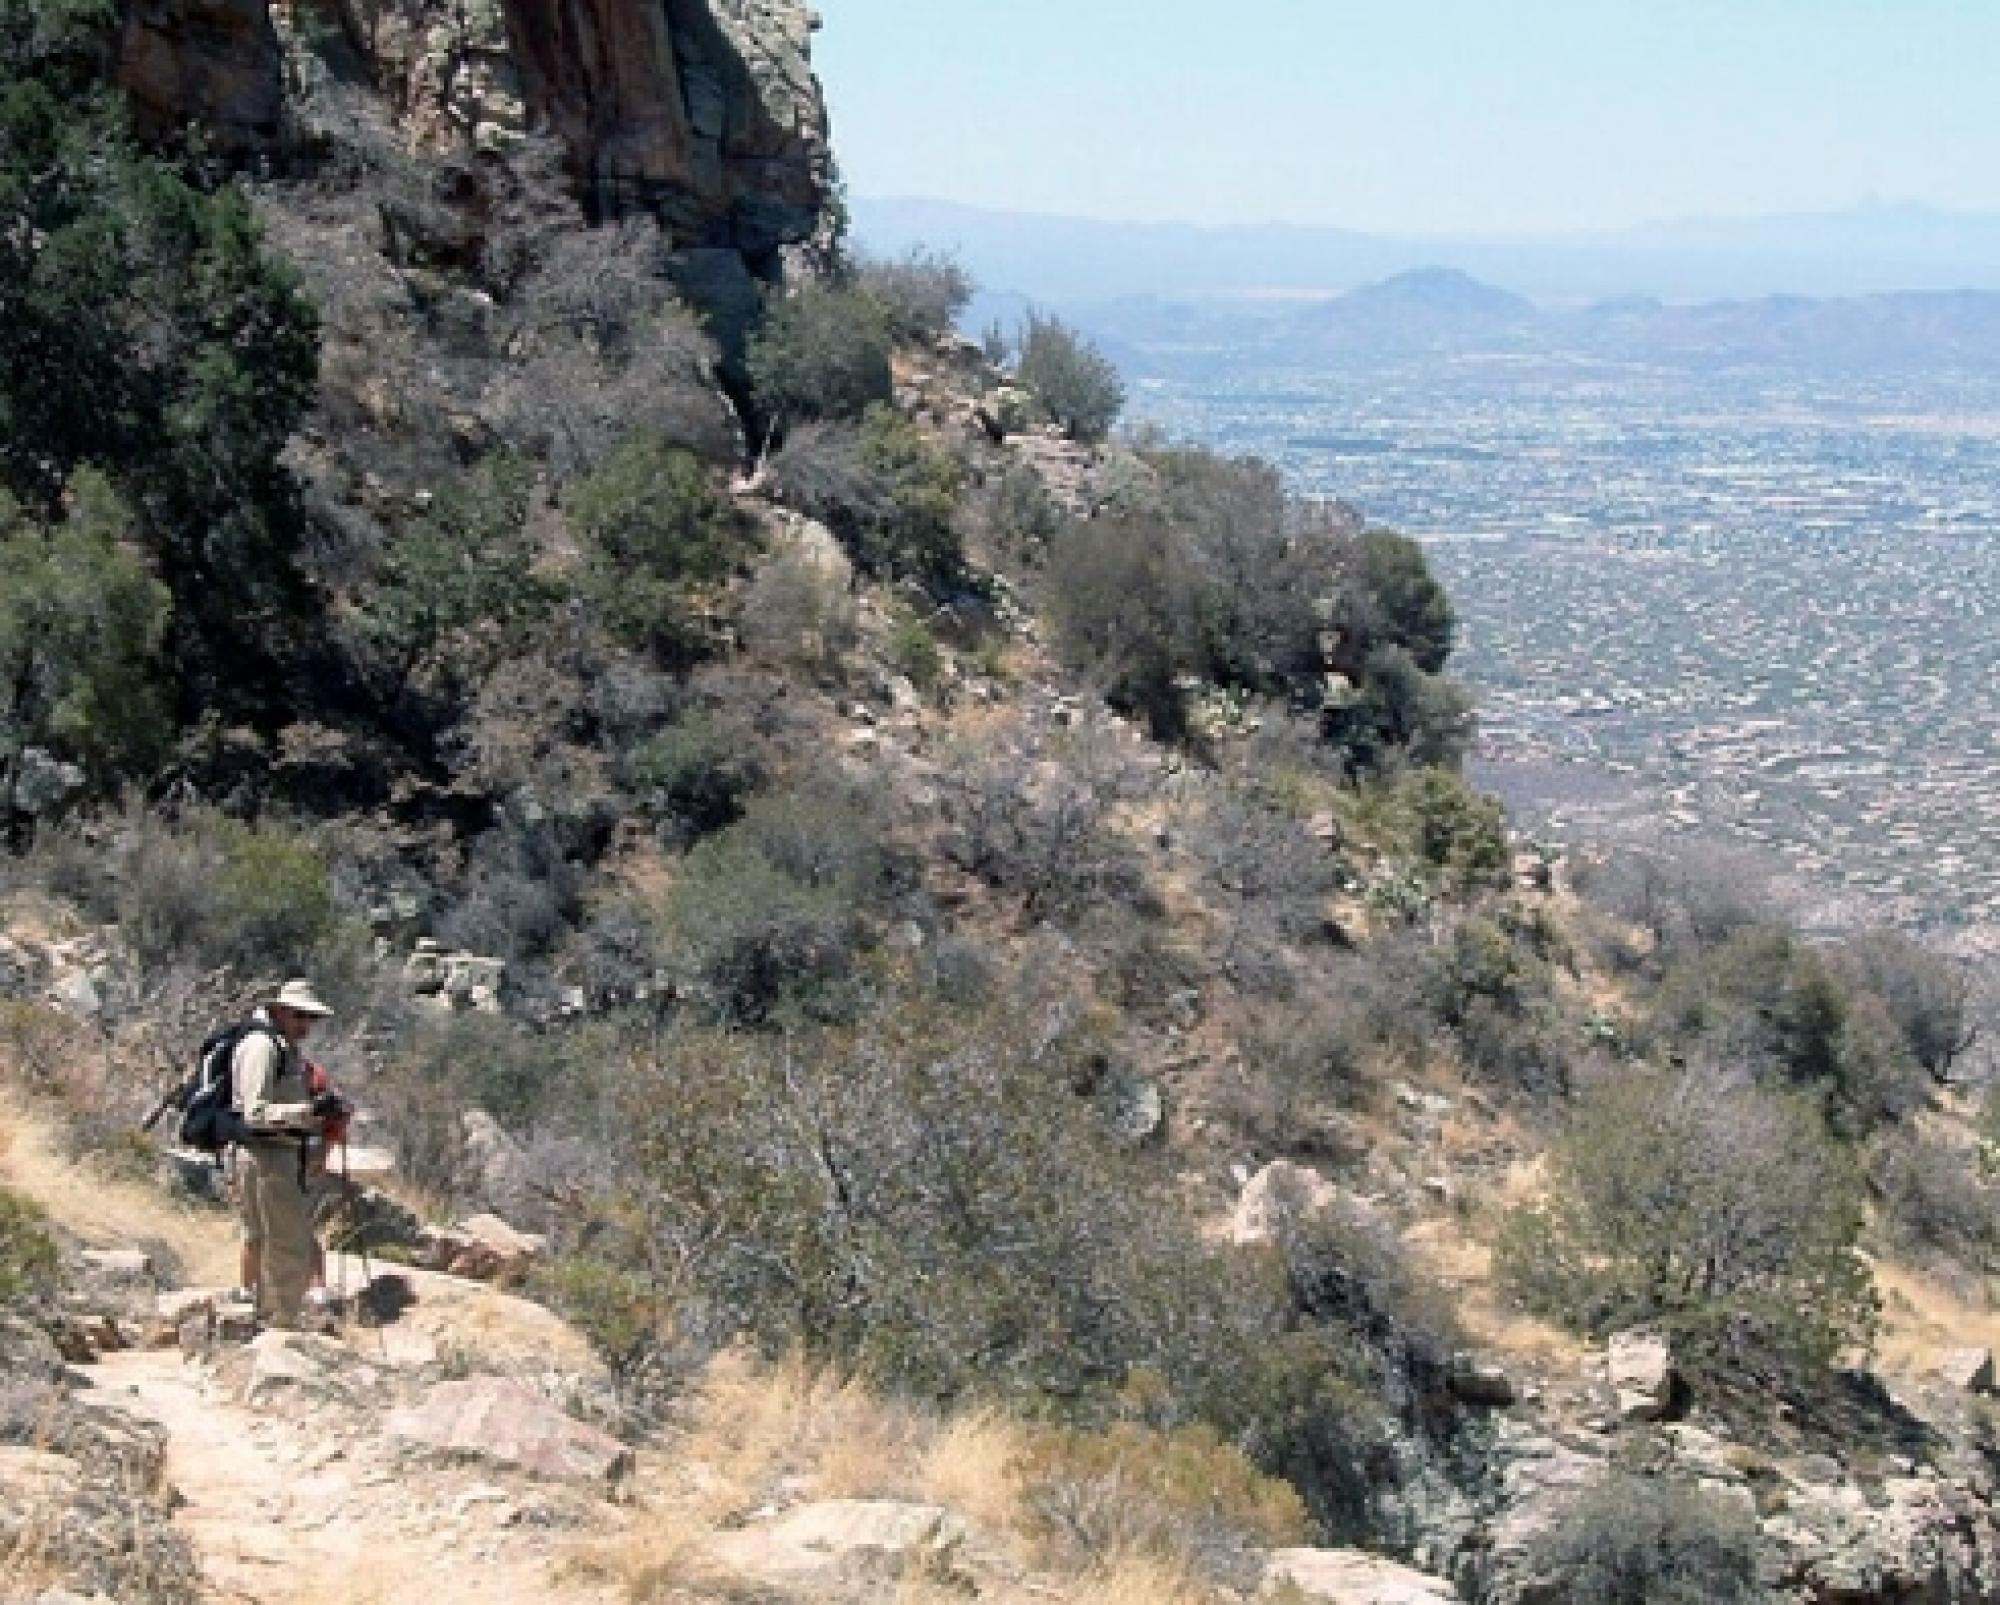 Dave Bertelsen hikes Finger Rock trail in the Santa Catalina Mountains. Tucson, Arizona can be seen in the valley below. Bertelsen has been hiking the trail and recording the locations of plants in bloom for more than 25 years.